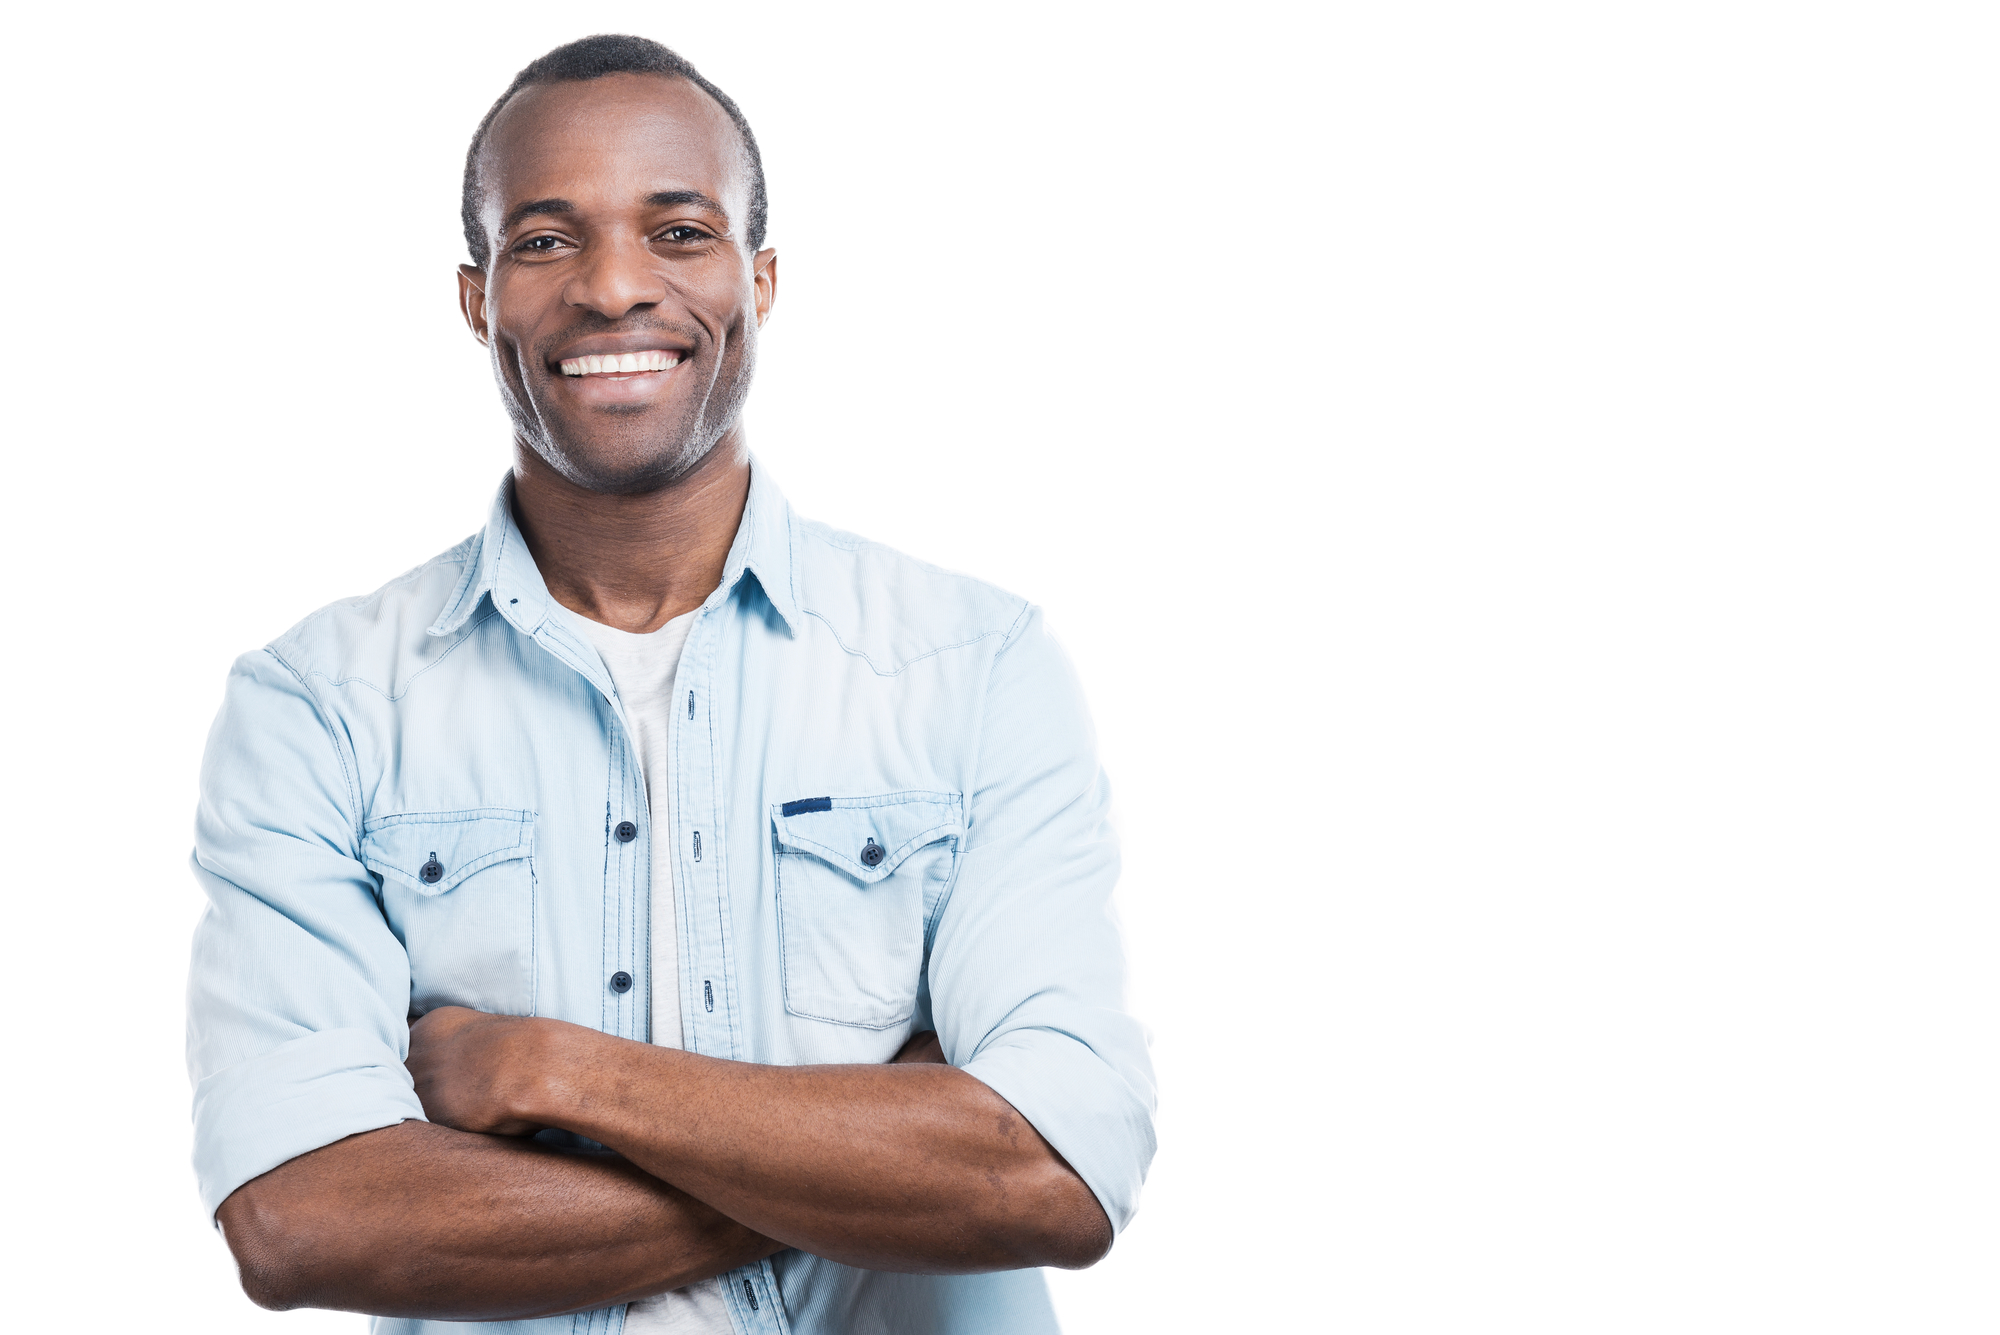 where can i find the best tricare dentist doral for teeth whitening?